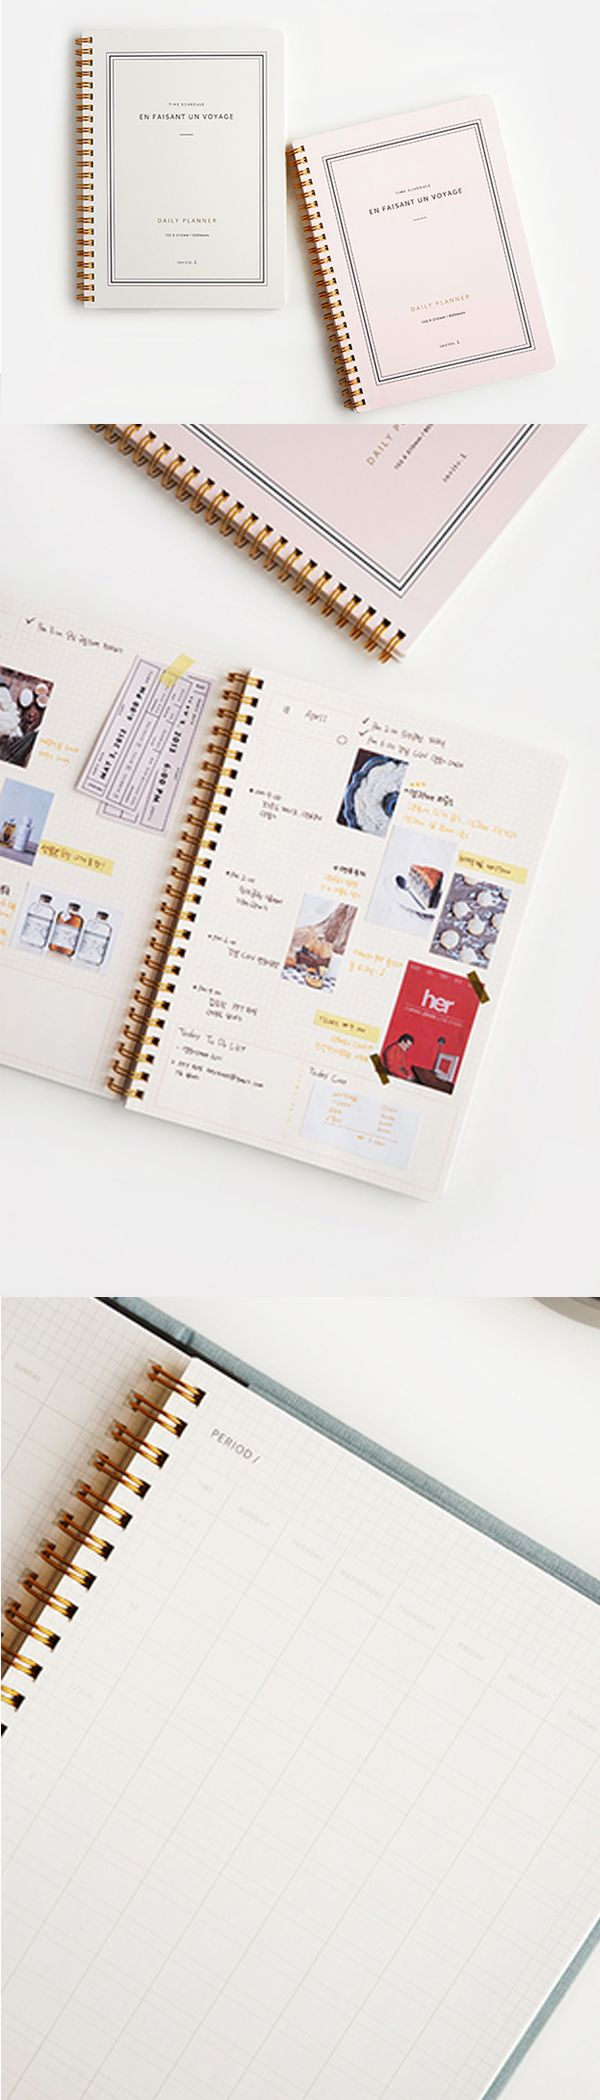 Your days will become more productive with the Daily Planner (2nd Edition)! By planning your days ahead, you can prepare for the tasks and things to do and won't miss important tasks of the day.